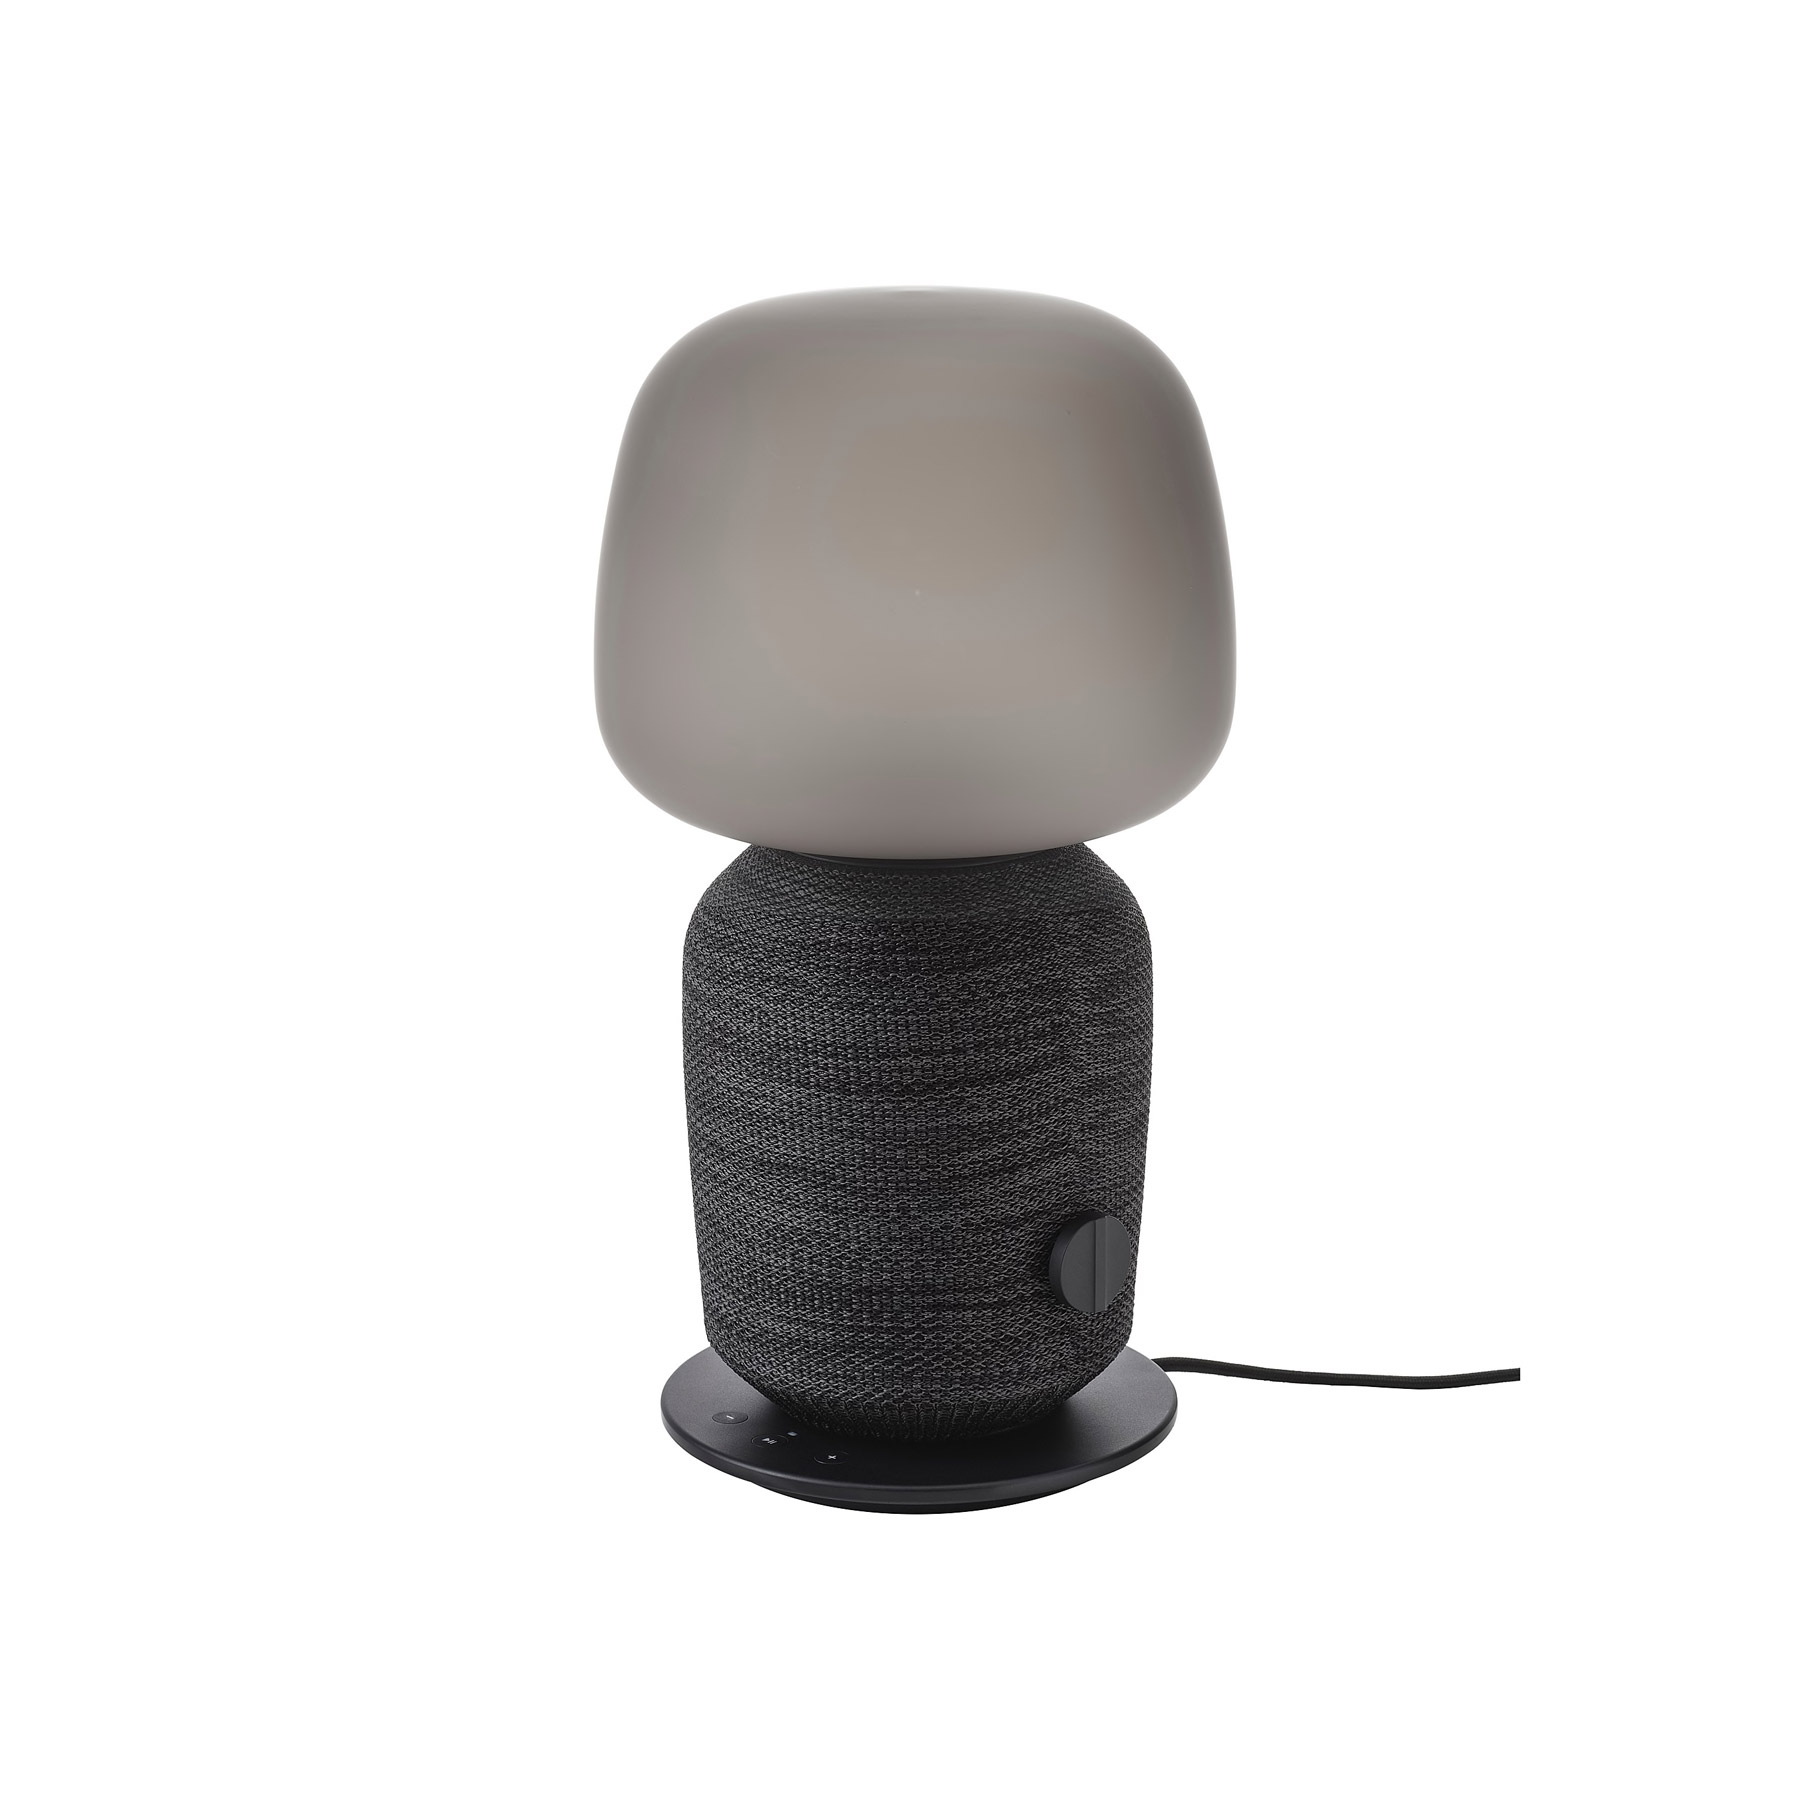 Gift ideas for dad – IKEA SYMFONISK Table lamp with WiFi speaker